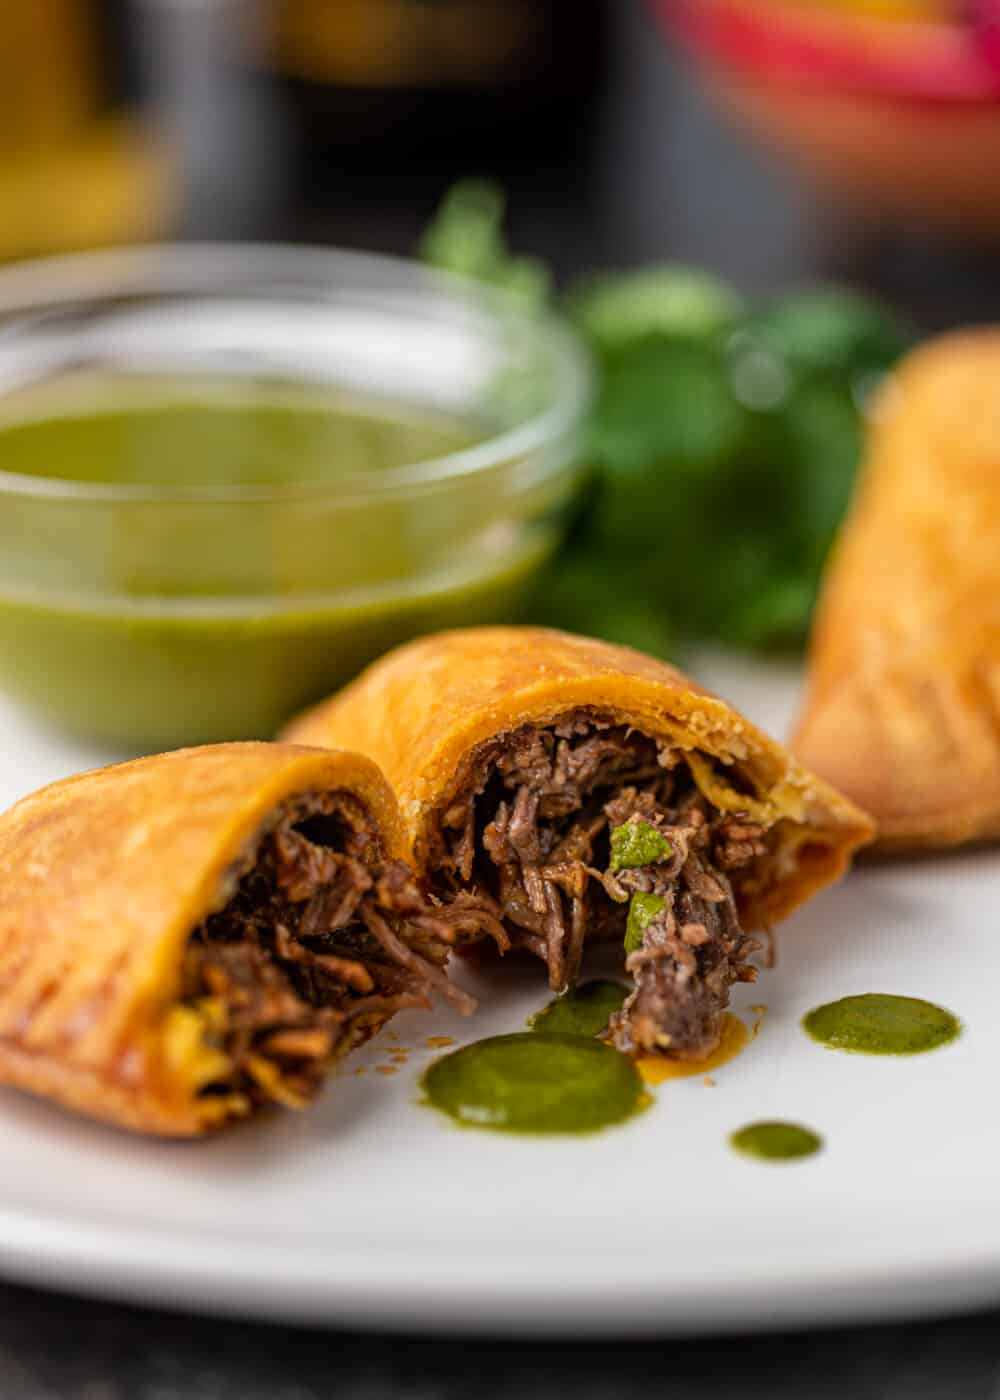 baked mexican appetizers filled with shredded beef